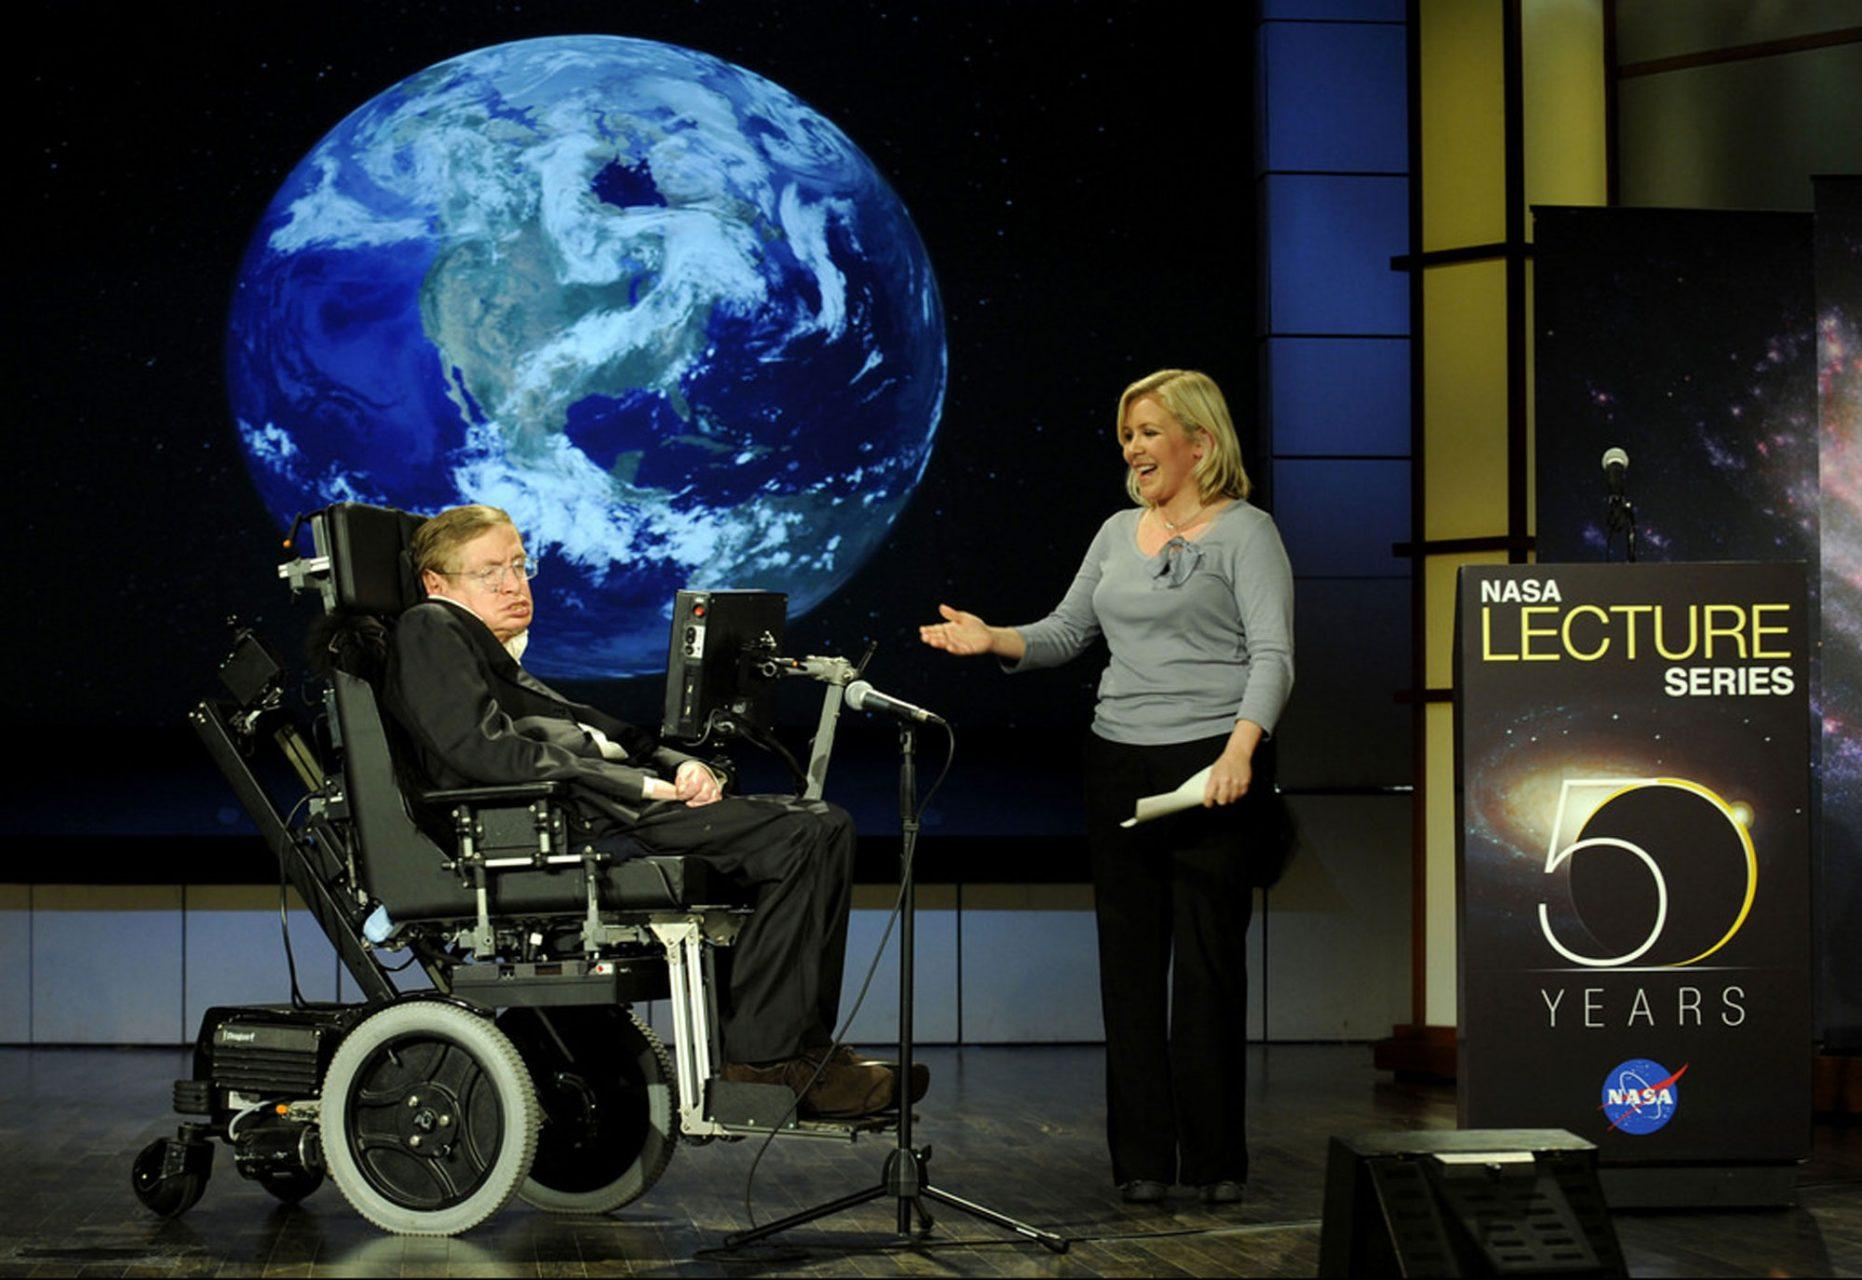 Stephen Hawking speaking at the NASA Lecture Series in 2008.